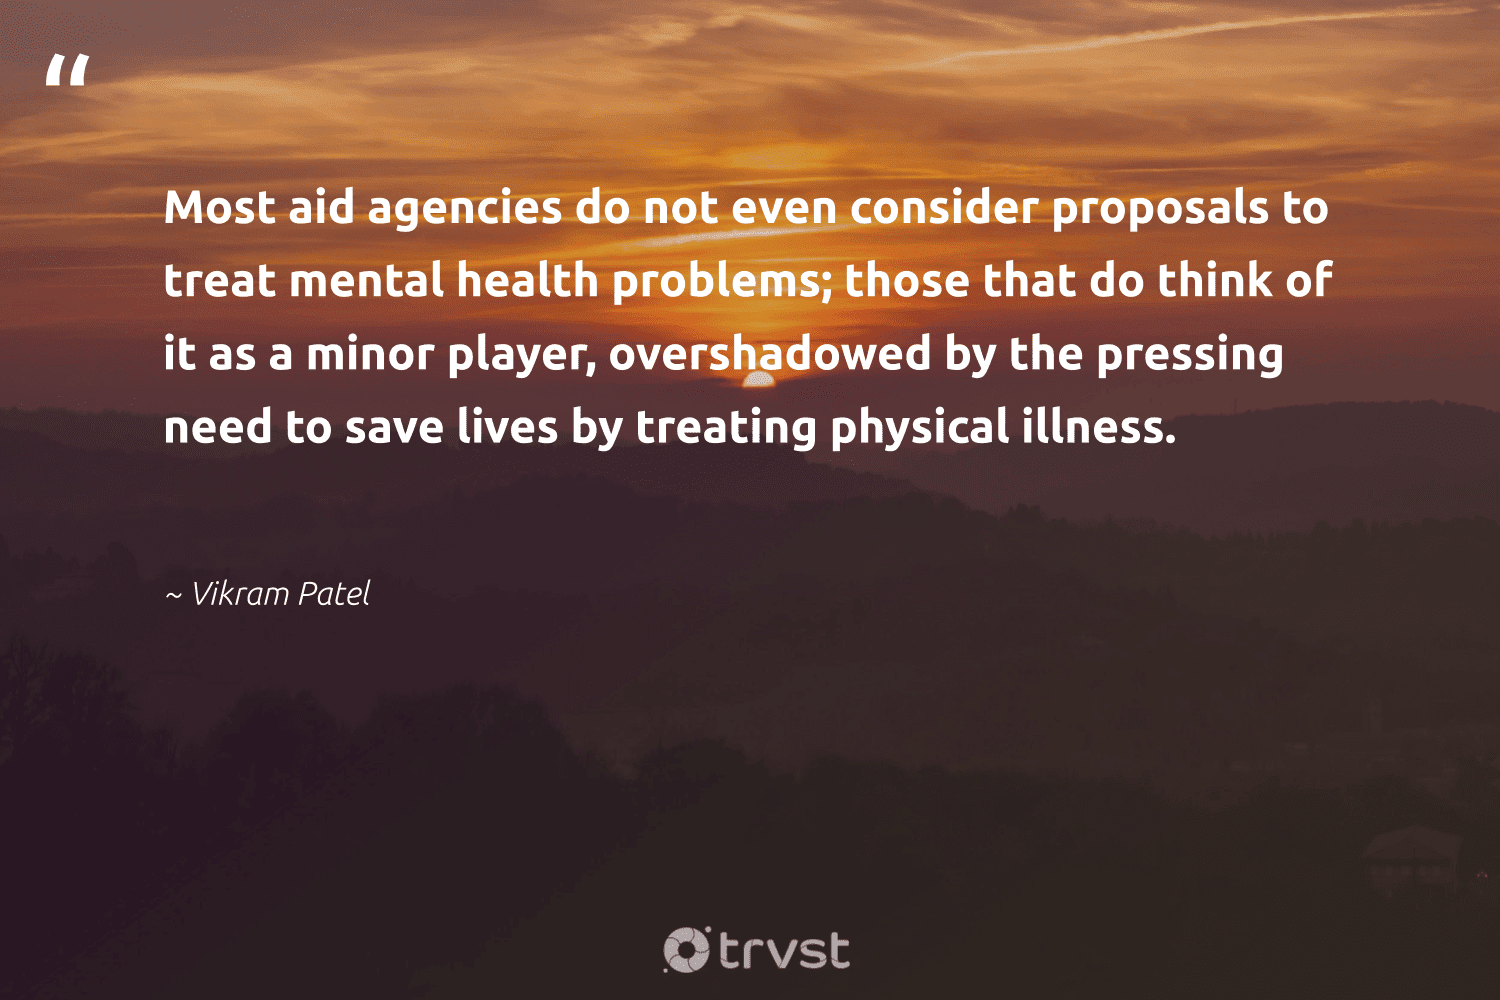 """Most aid agencies do not even consider proposals to treat mental health problems; those that do think of it as a minor player, overshadowed by the pressing need to save lives by treating physical illness.""  - Vikram Patel #trvst #quotes #mentalhealth #health #mentalhealthawareness #mindset #begreat #dotherightthing #depression #togetherwecan #nevergiveup #dogood"